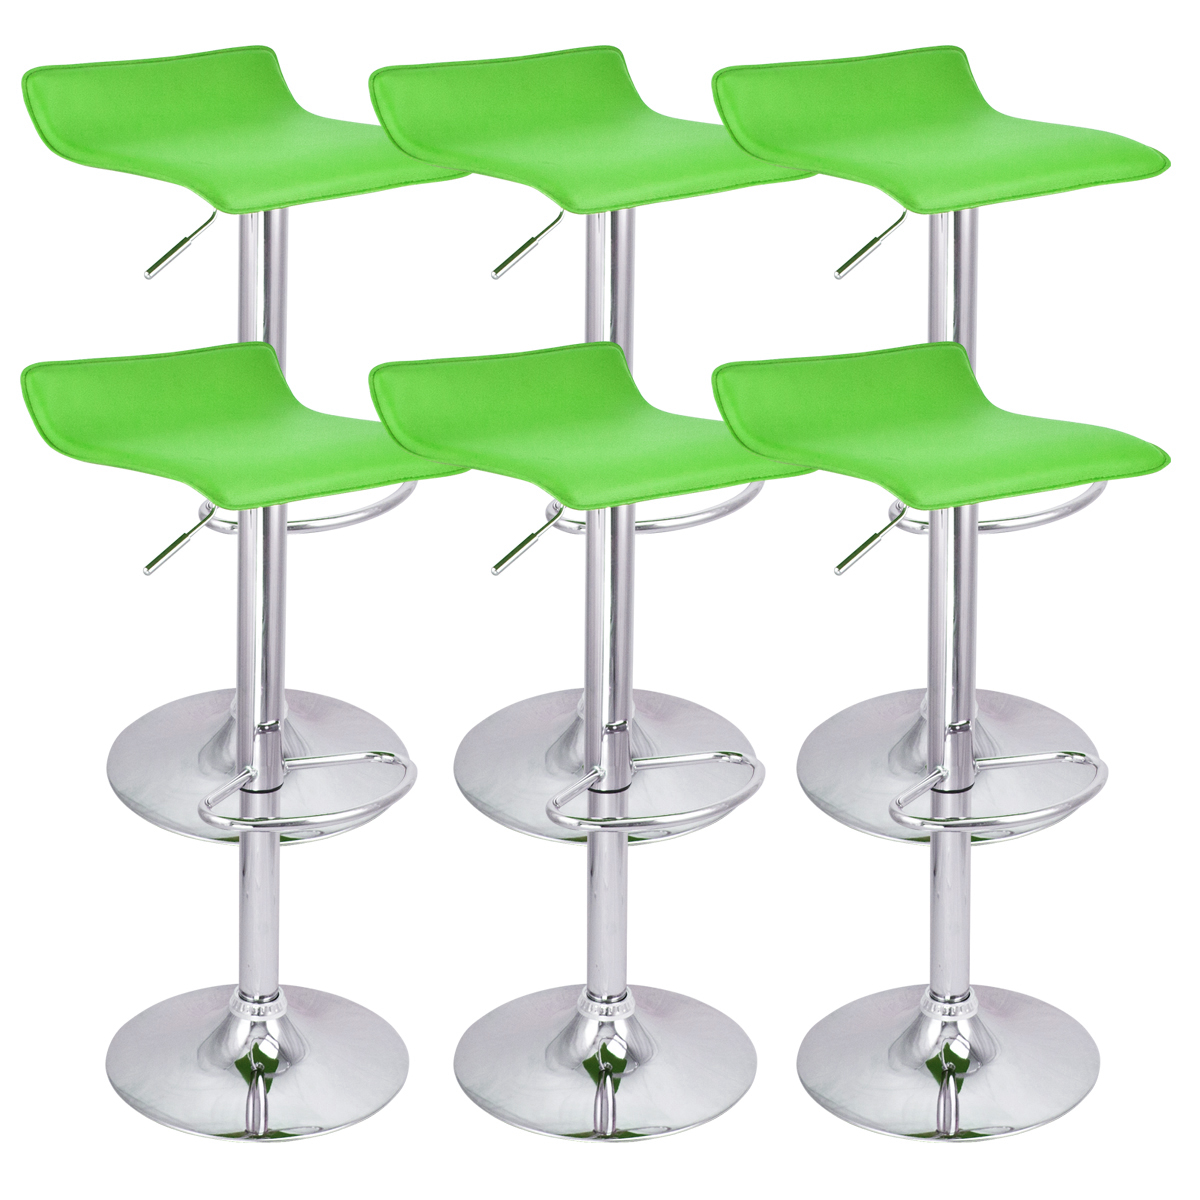 6 New Swivel Modern Bar Stool Green Bombo Chair Pub